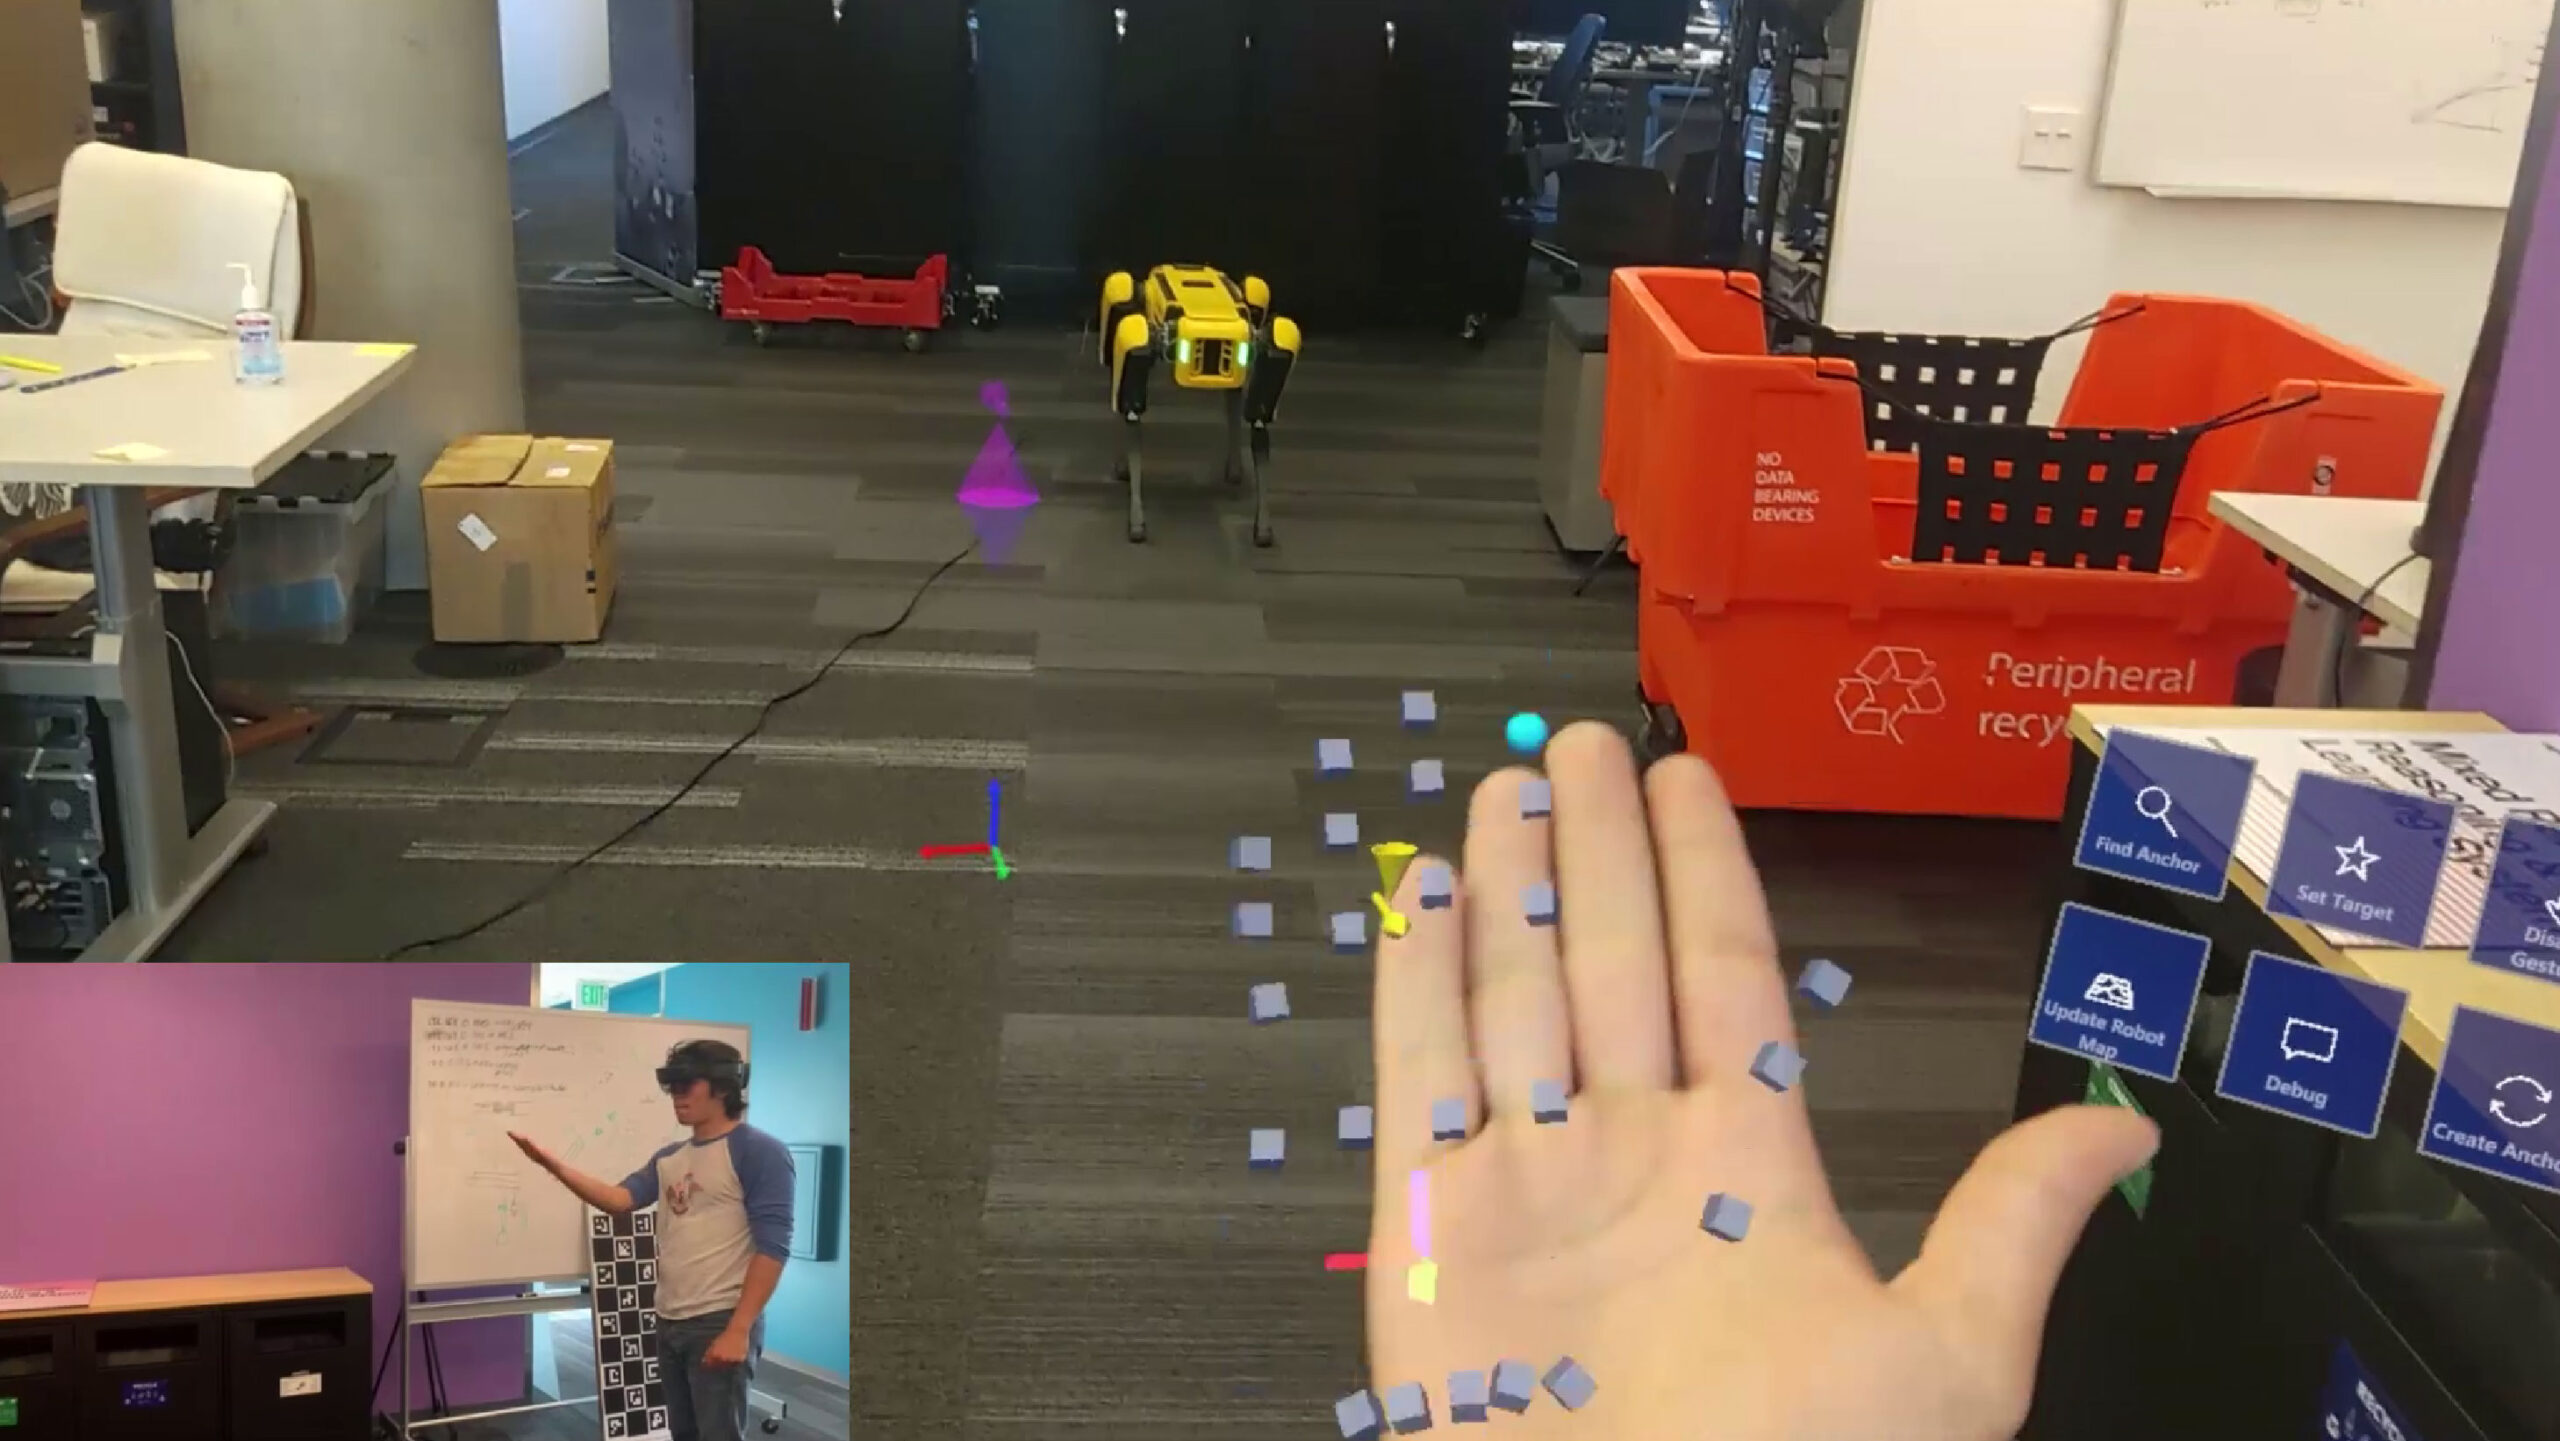 Enabling interaction between mixed reality and robots via cloud-based localization